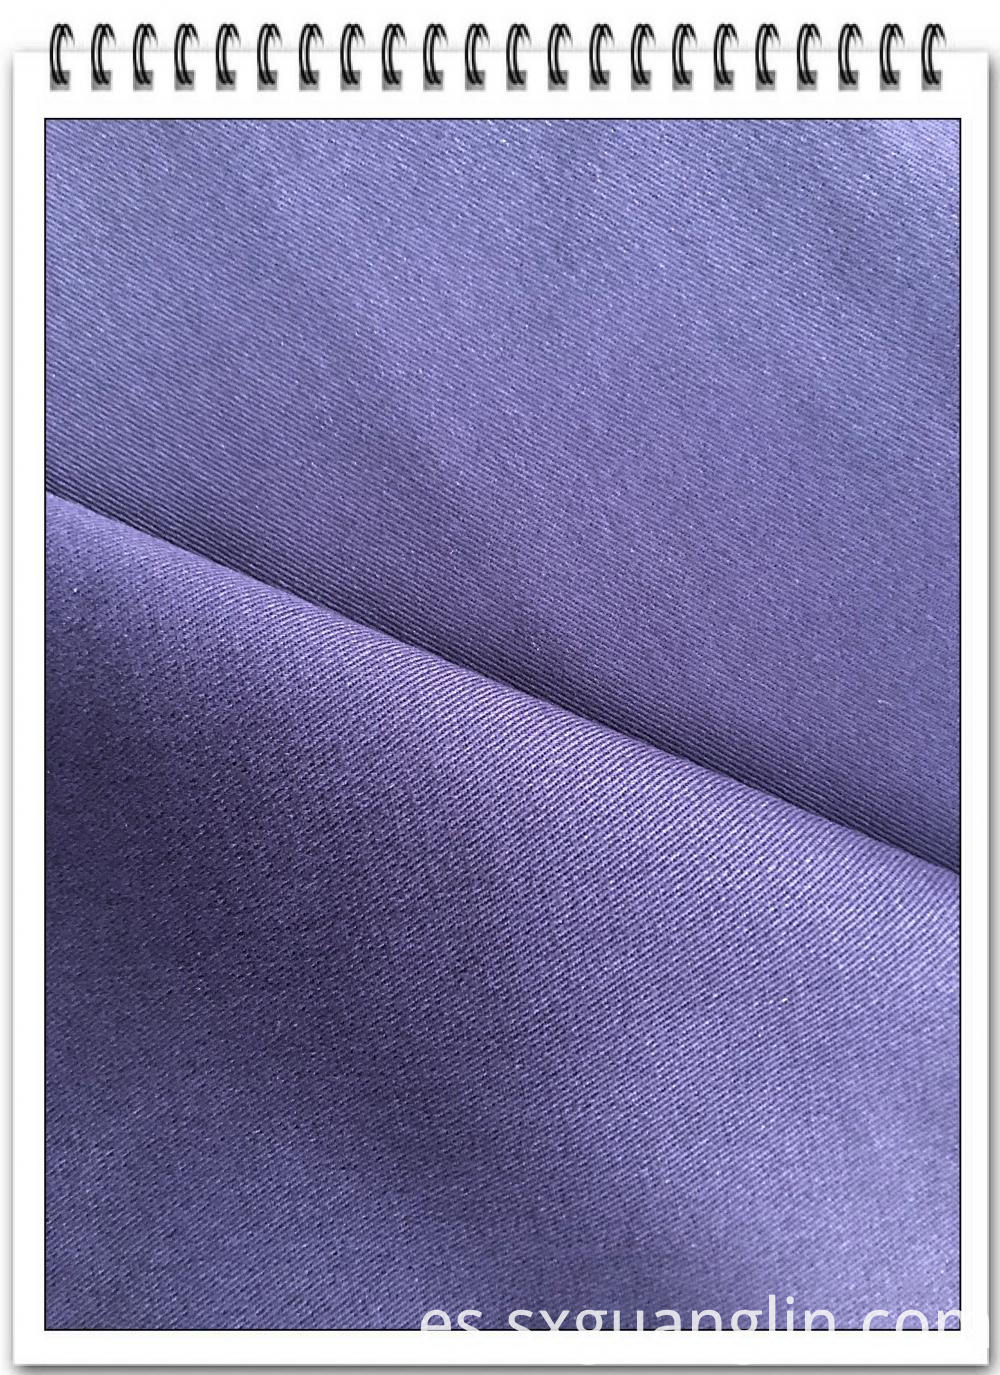 100%cotton twill fabric